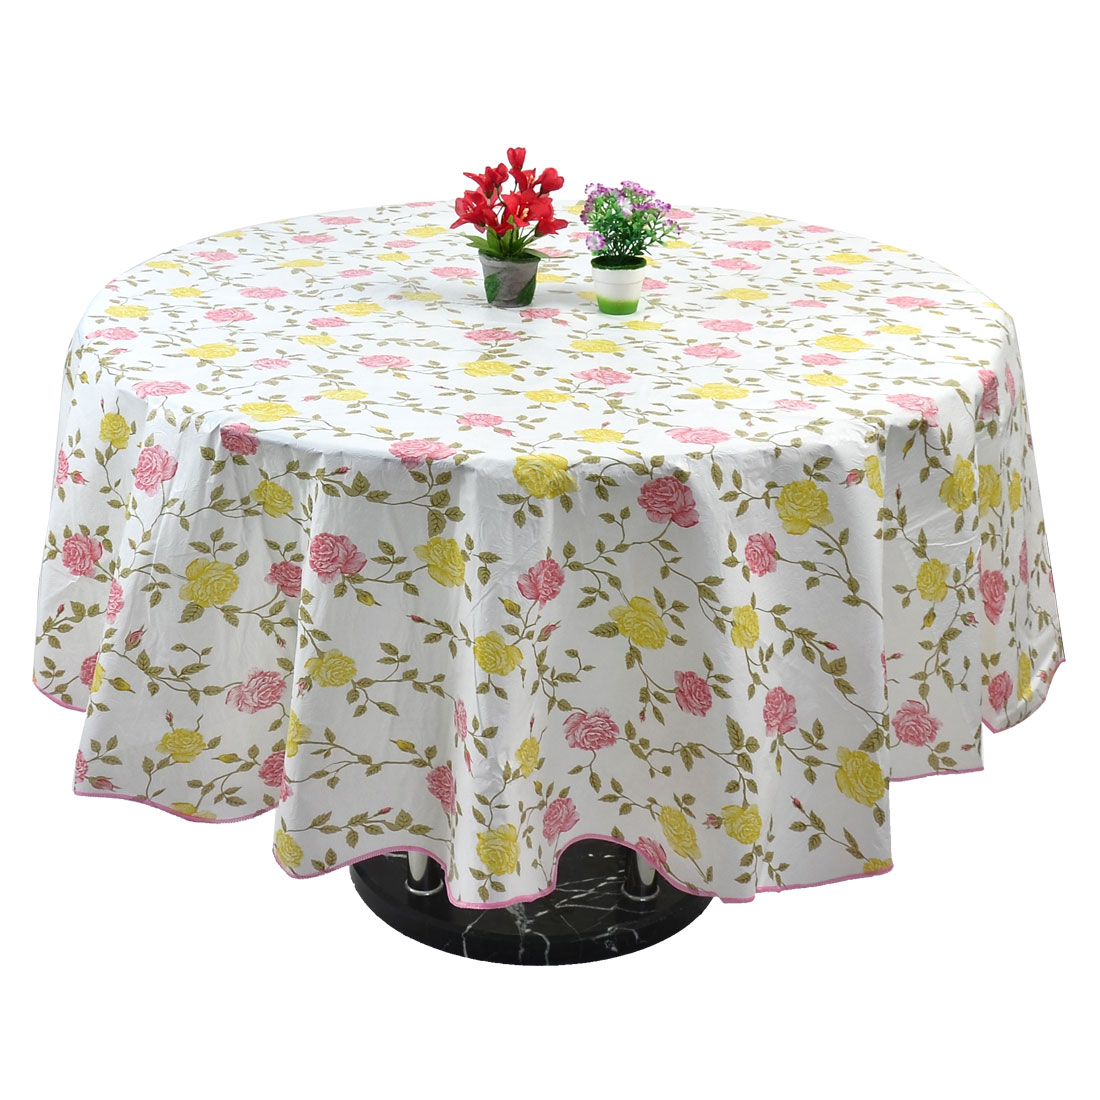 Home Bi-color Rose Pattern Round Water Resistant Tablecloth Table Cloth Cover